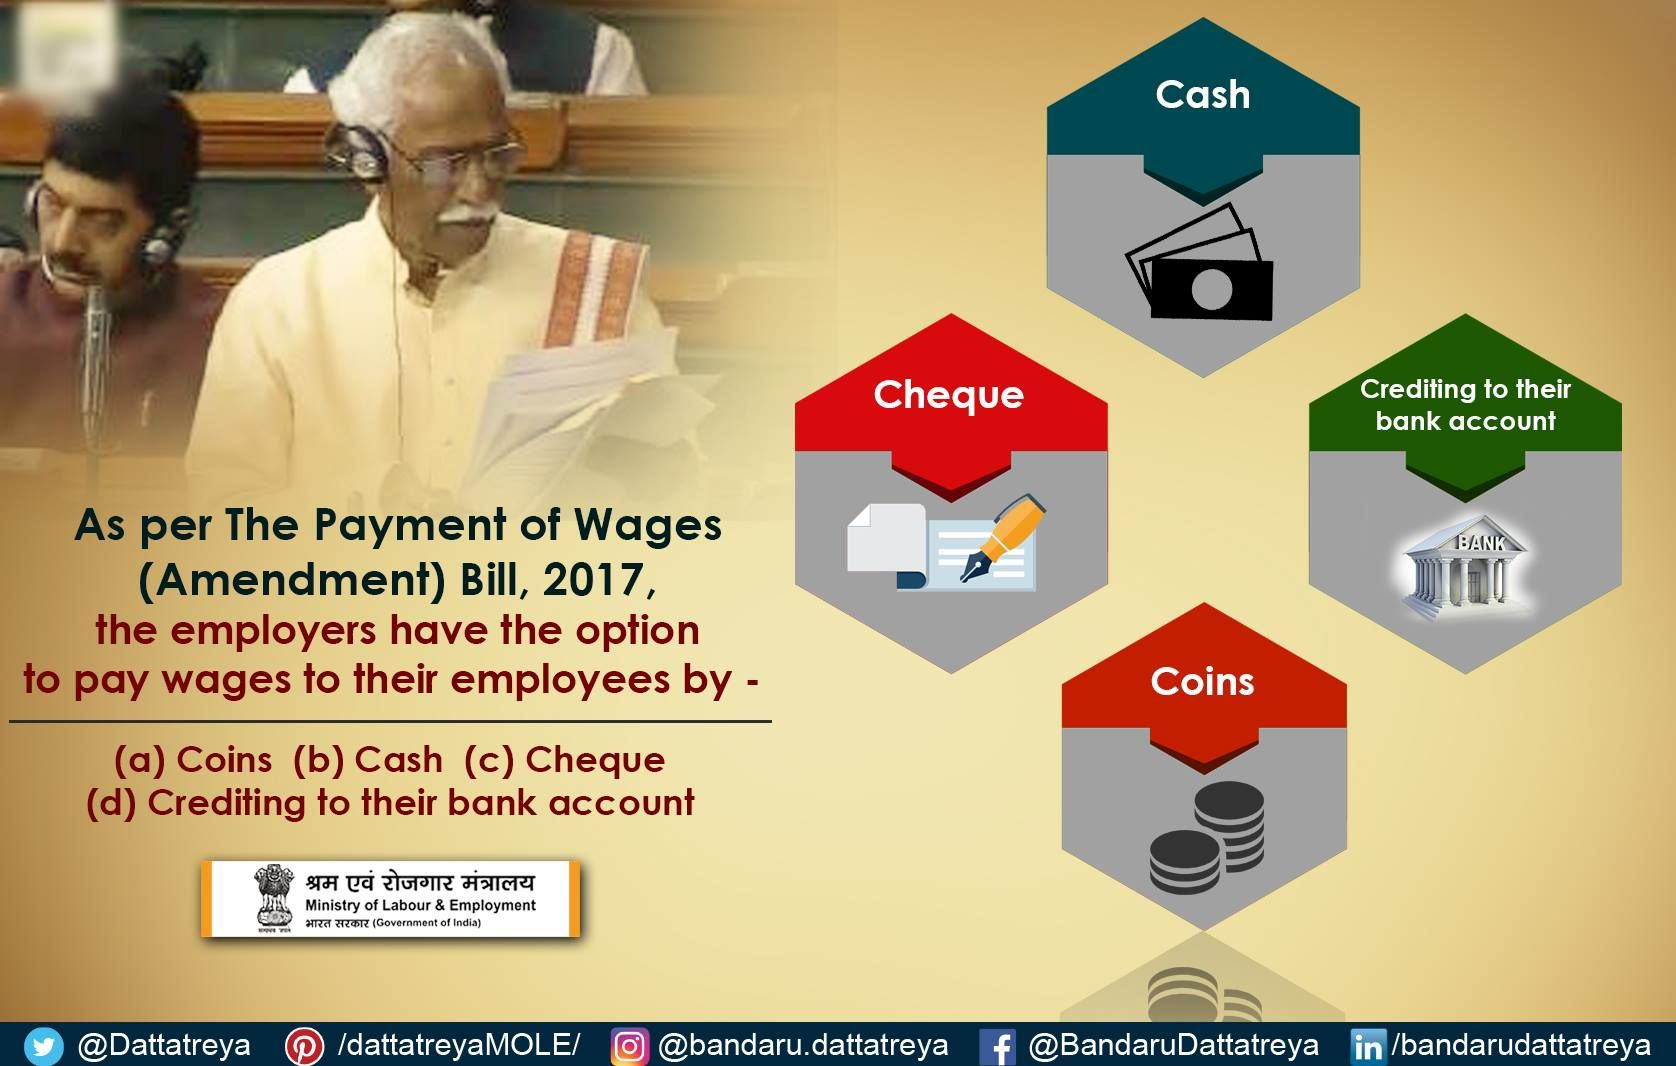 Workers Employed In The Unorganised Sector Will Benefit The Most From This Decision With Images Bank Account Employment Development